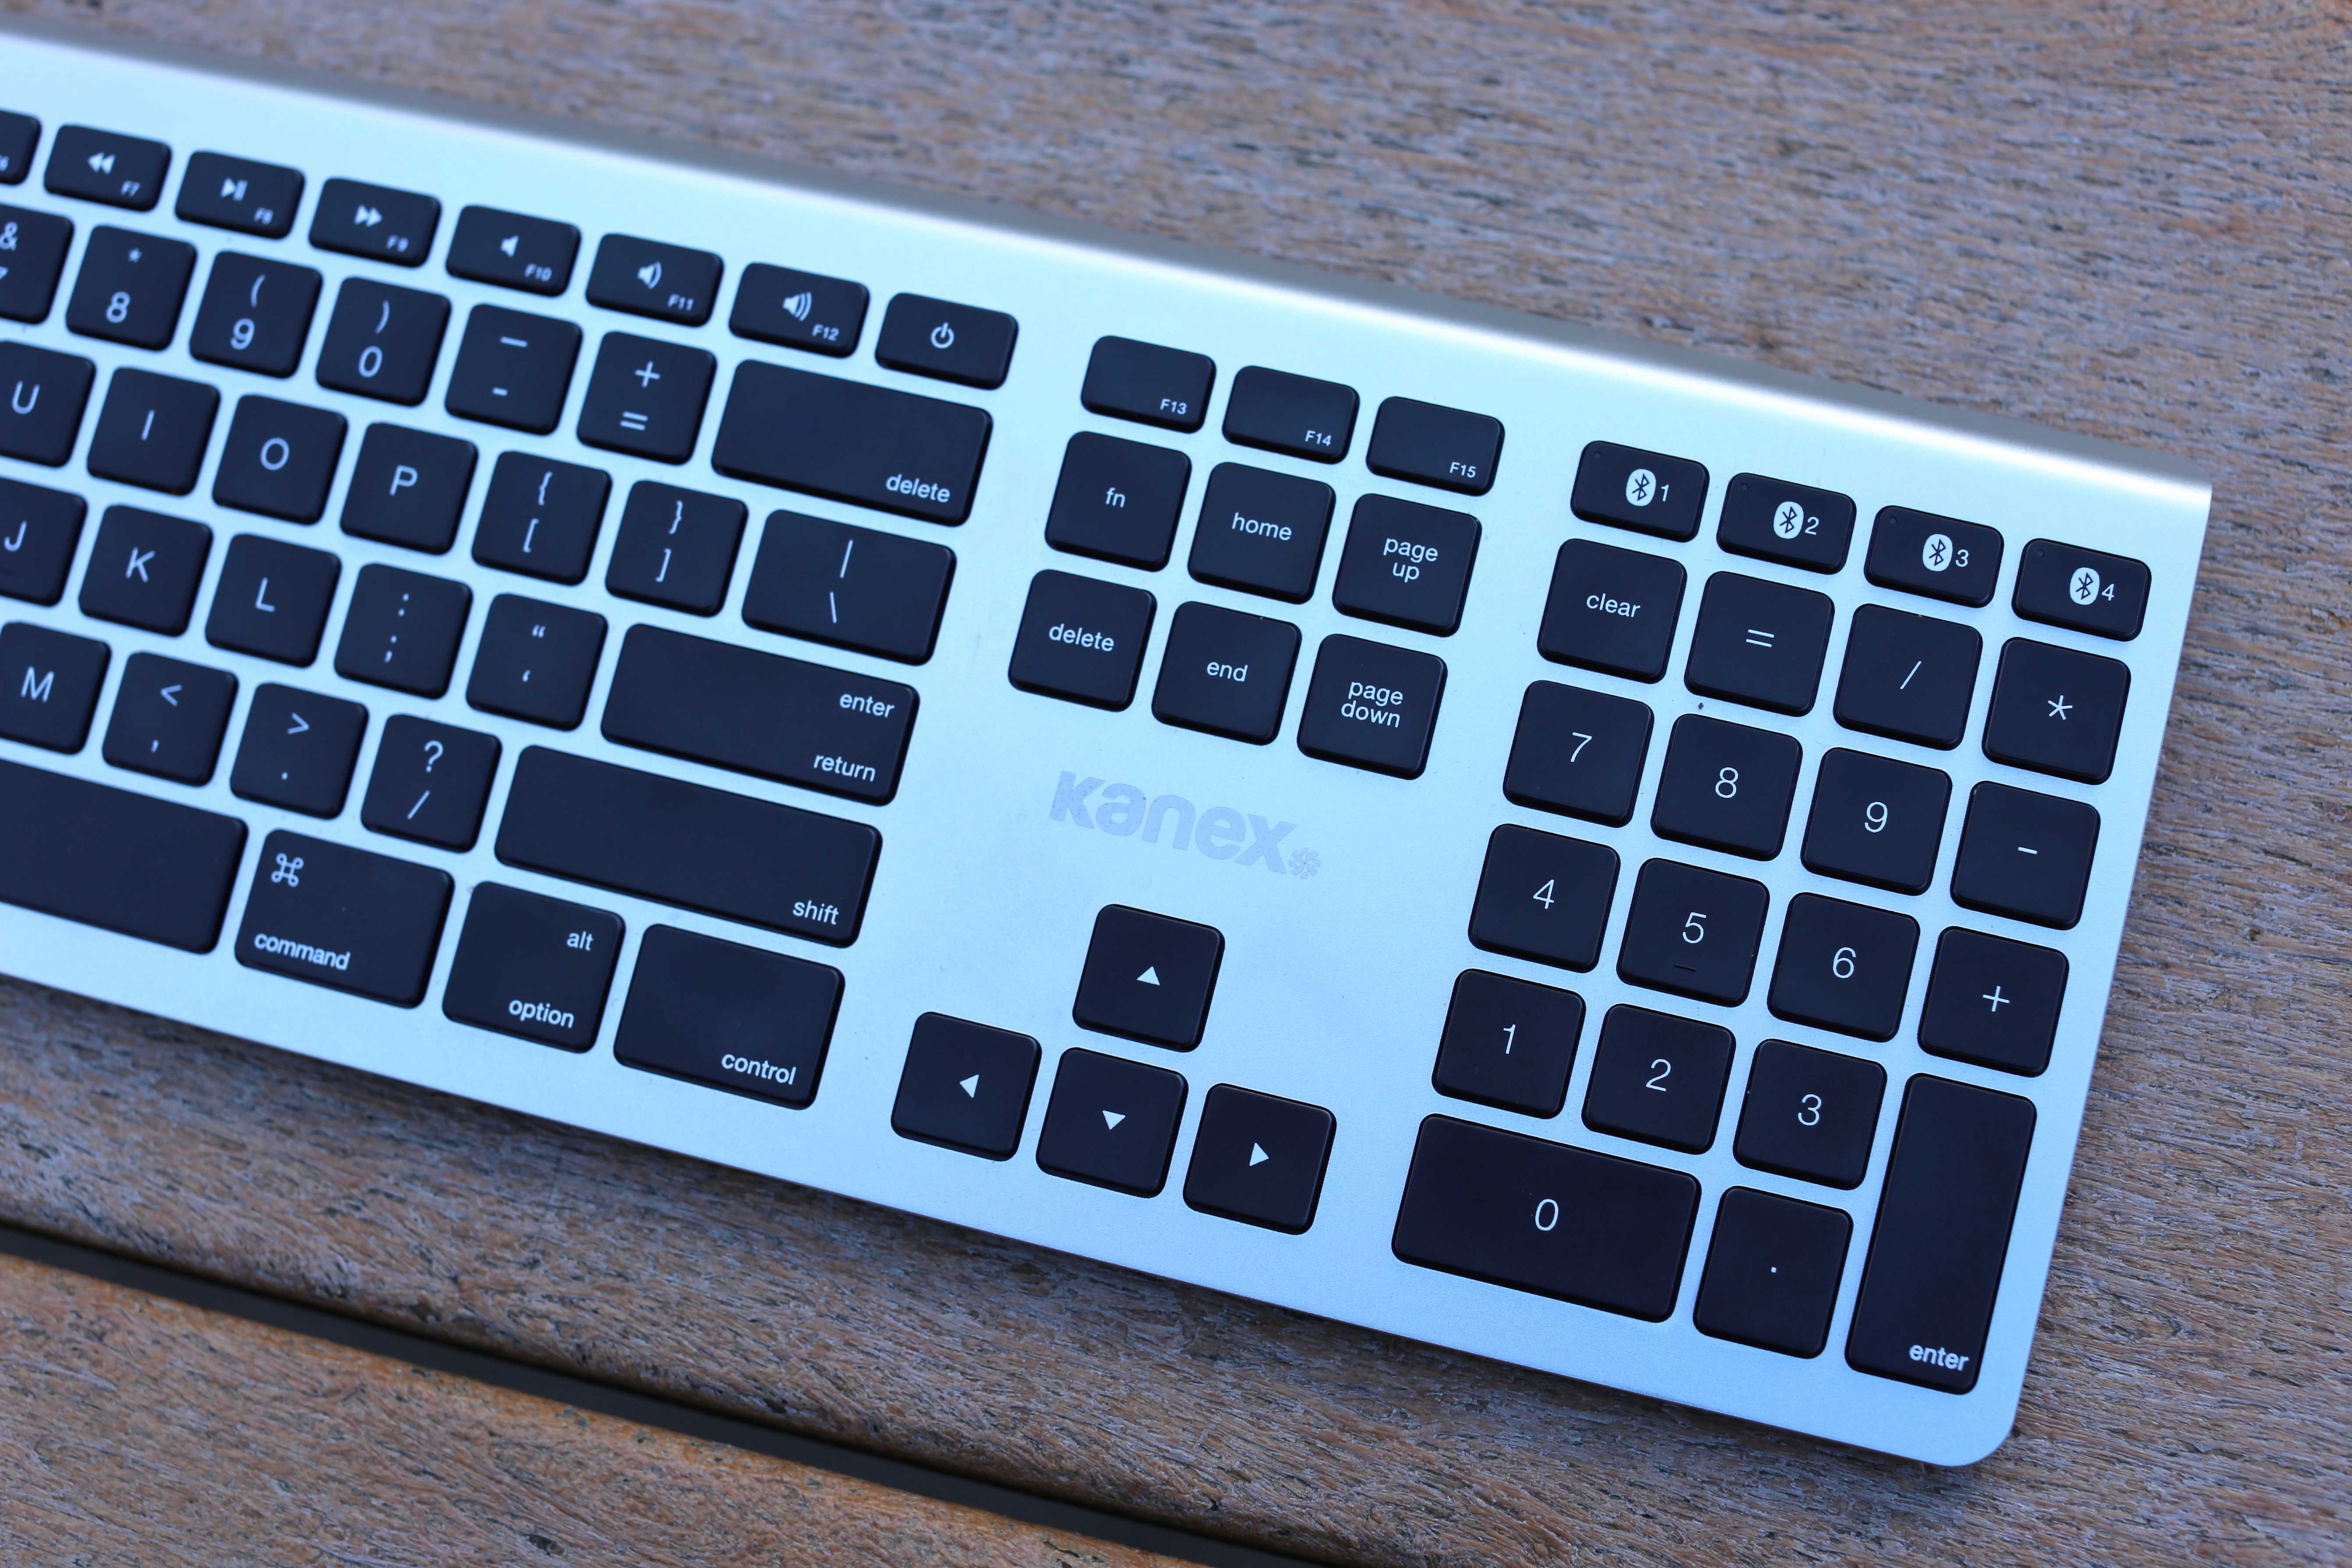 Review: Kanex MultiSync Aluminum wireless Mac keyboard is magical